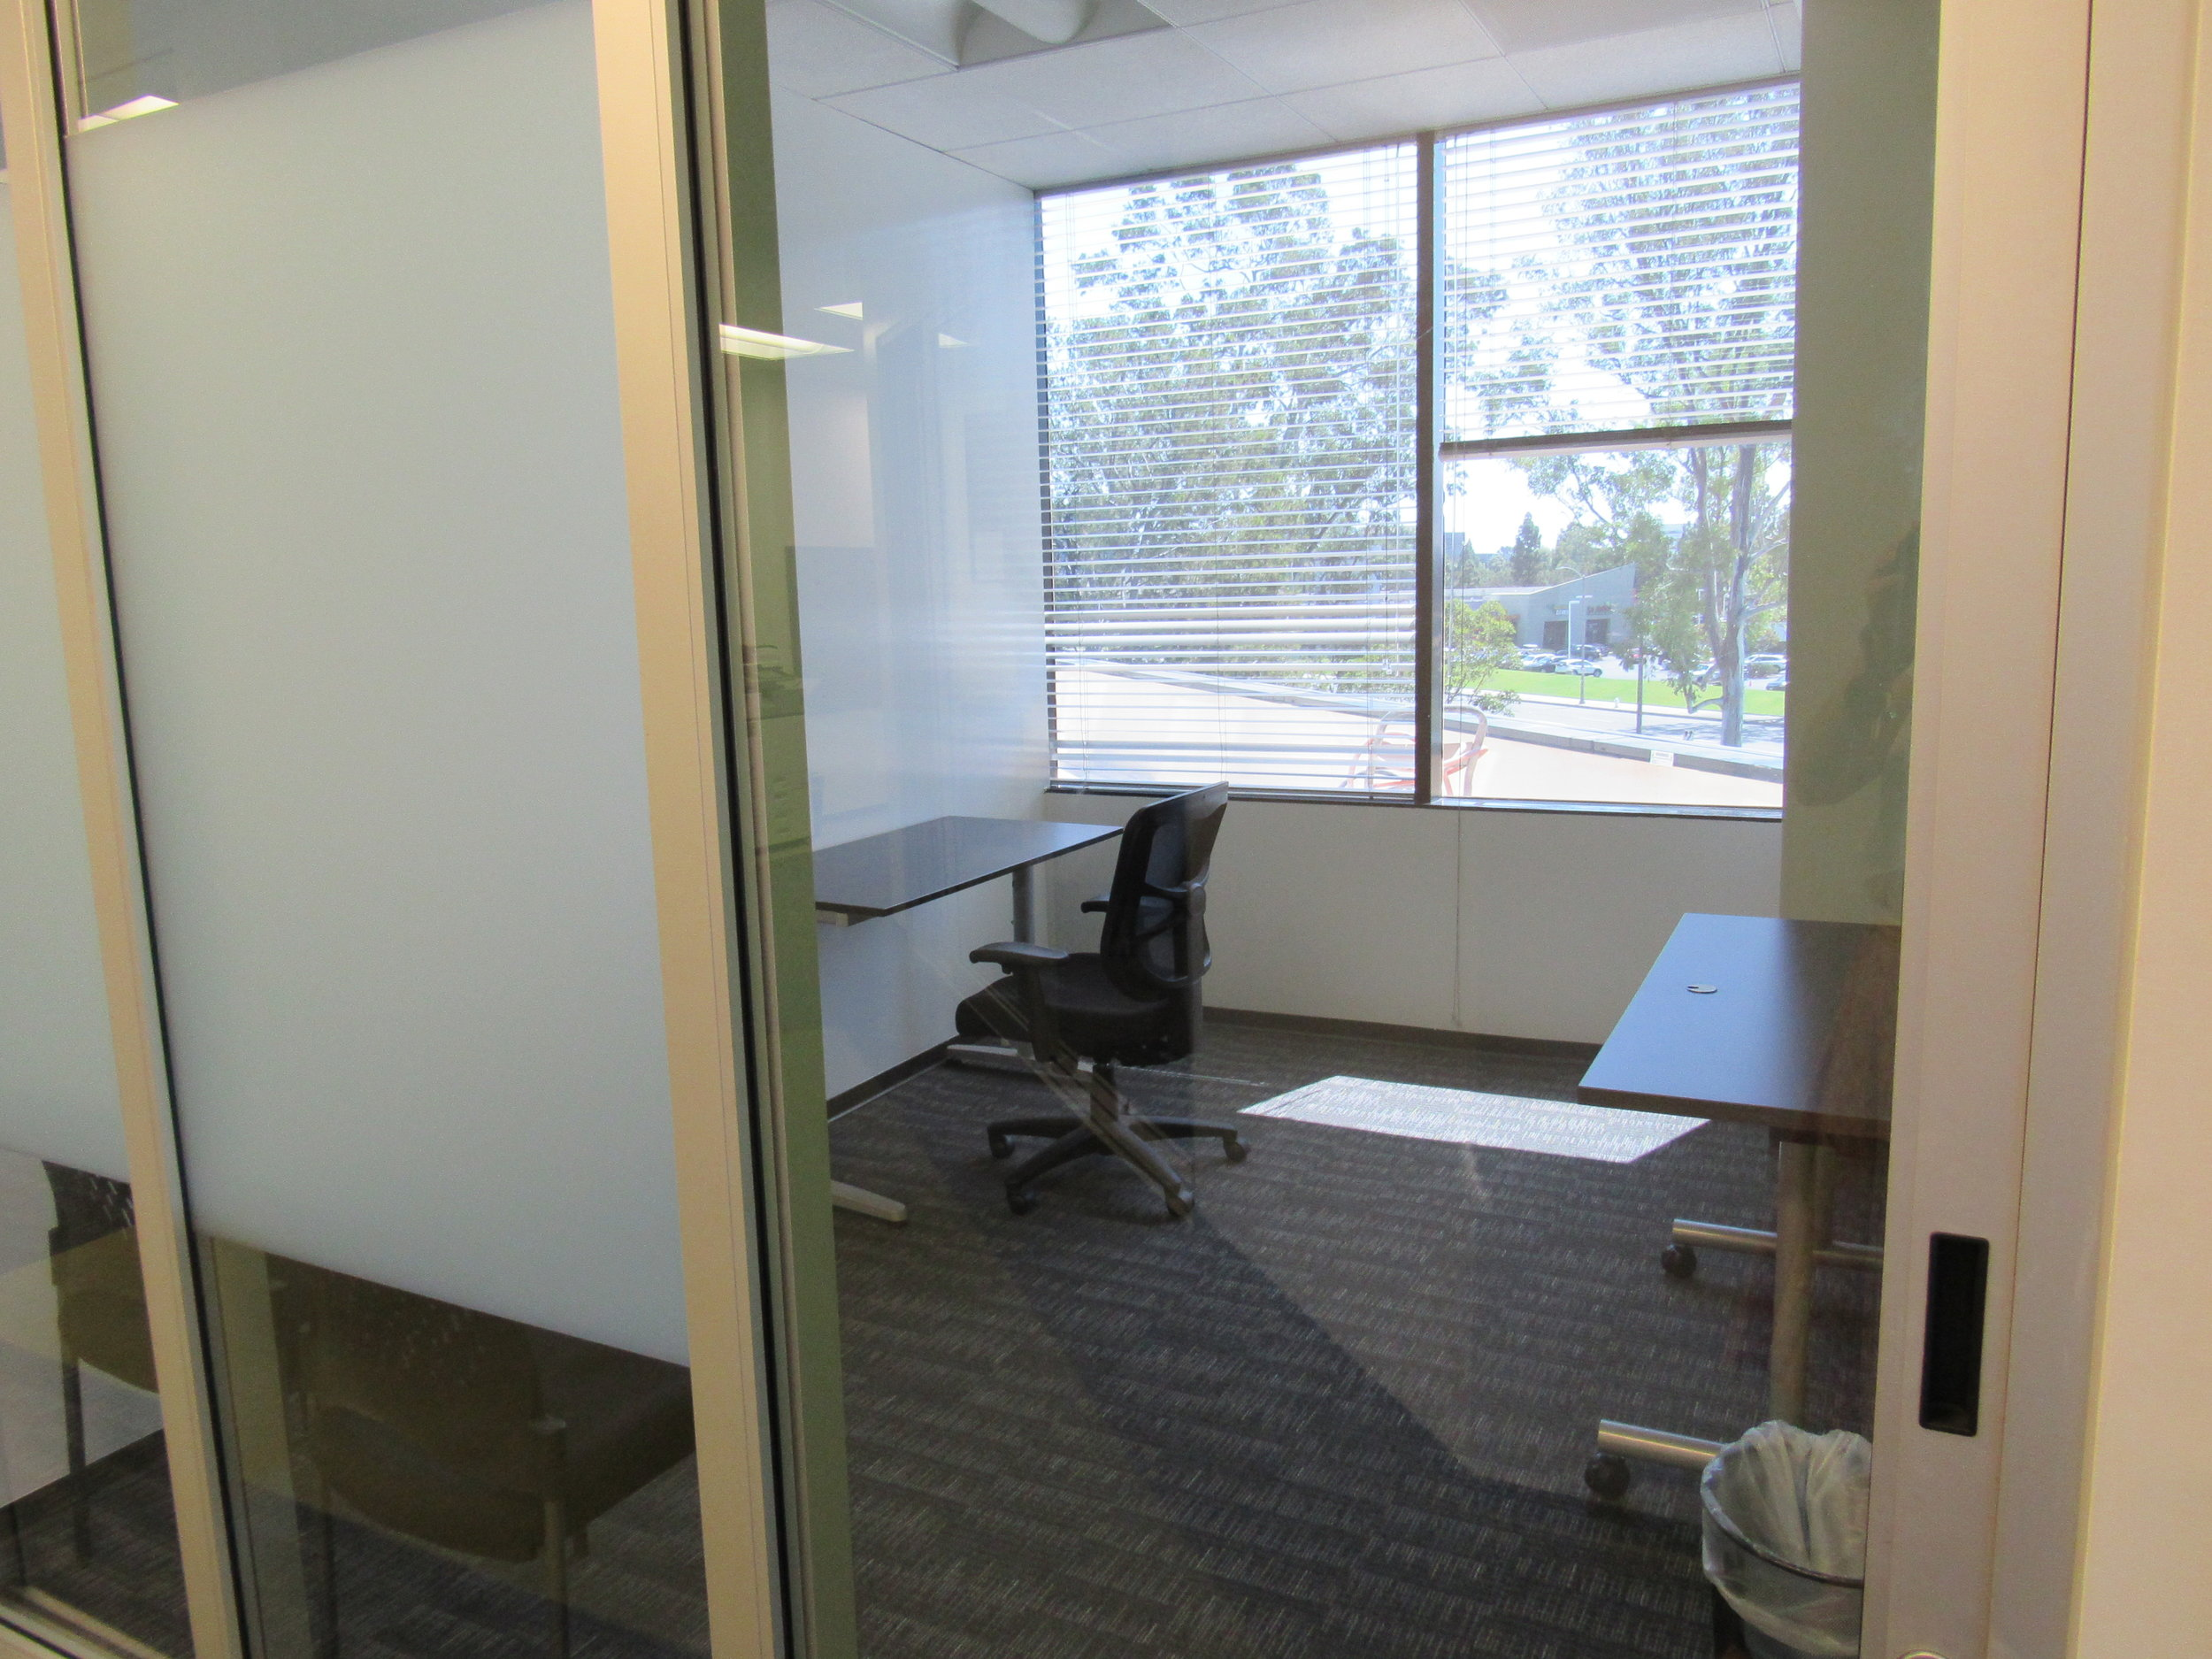 DEDICATED DESKS - $400/monthWorkdays Per Month: Unlimited Time in Private OfficeAccess: 24/7Wifi: DUH!Conference Rooms: 3 Free Hour/month + 50% off hourly ratesMailbox: Included